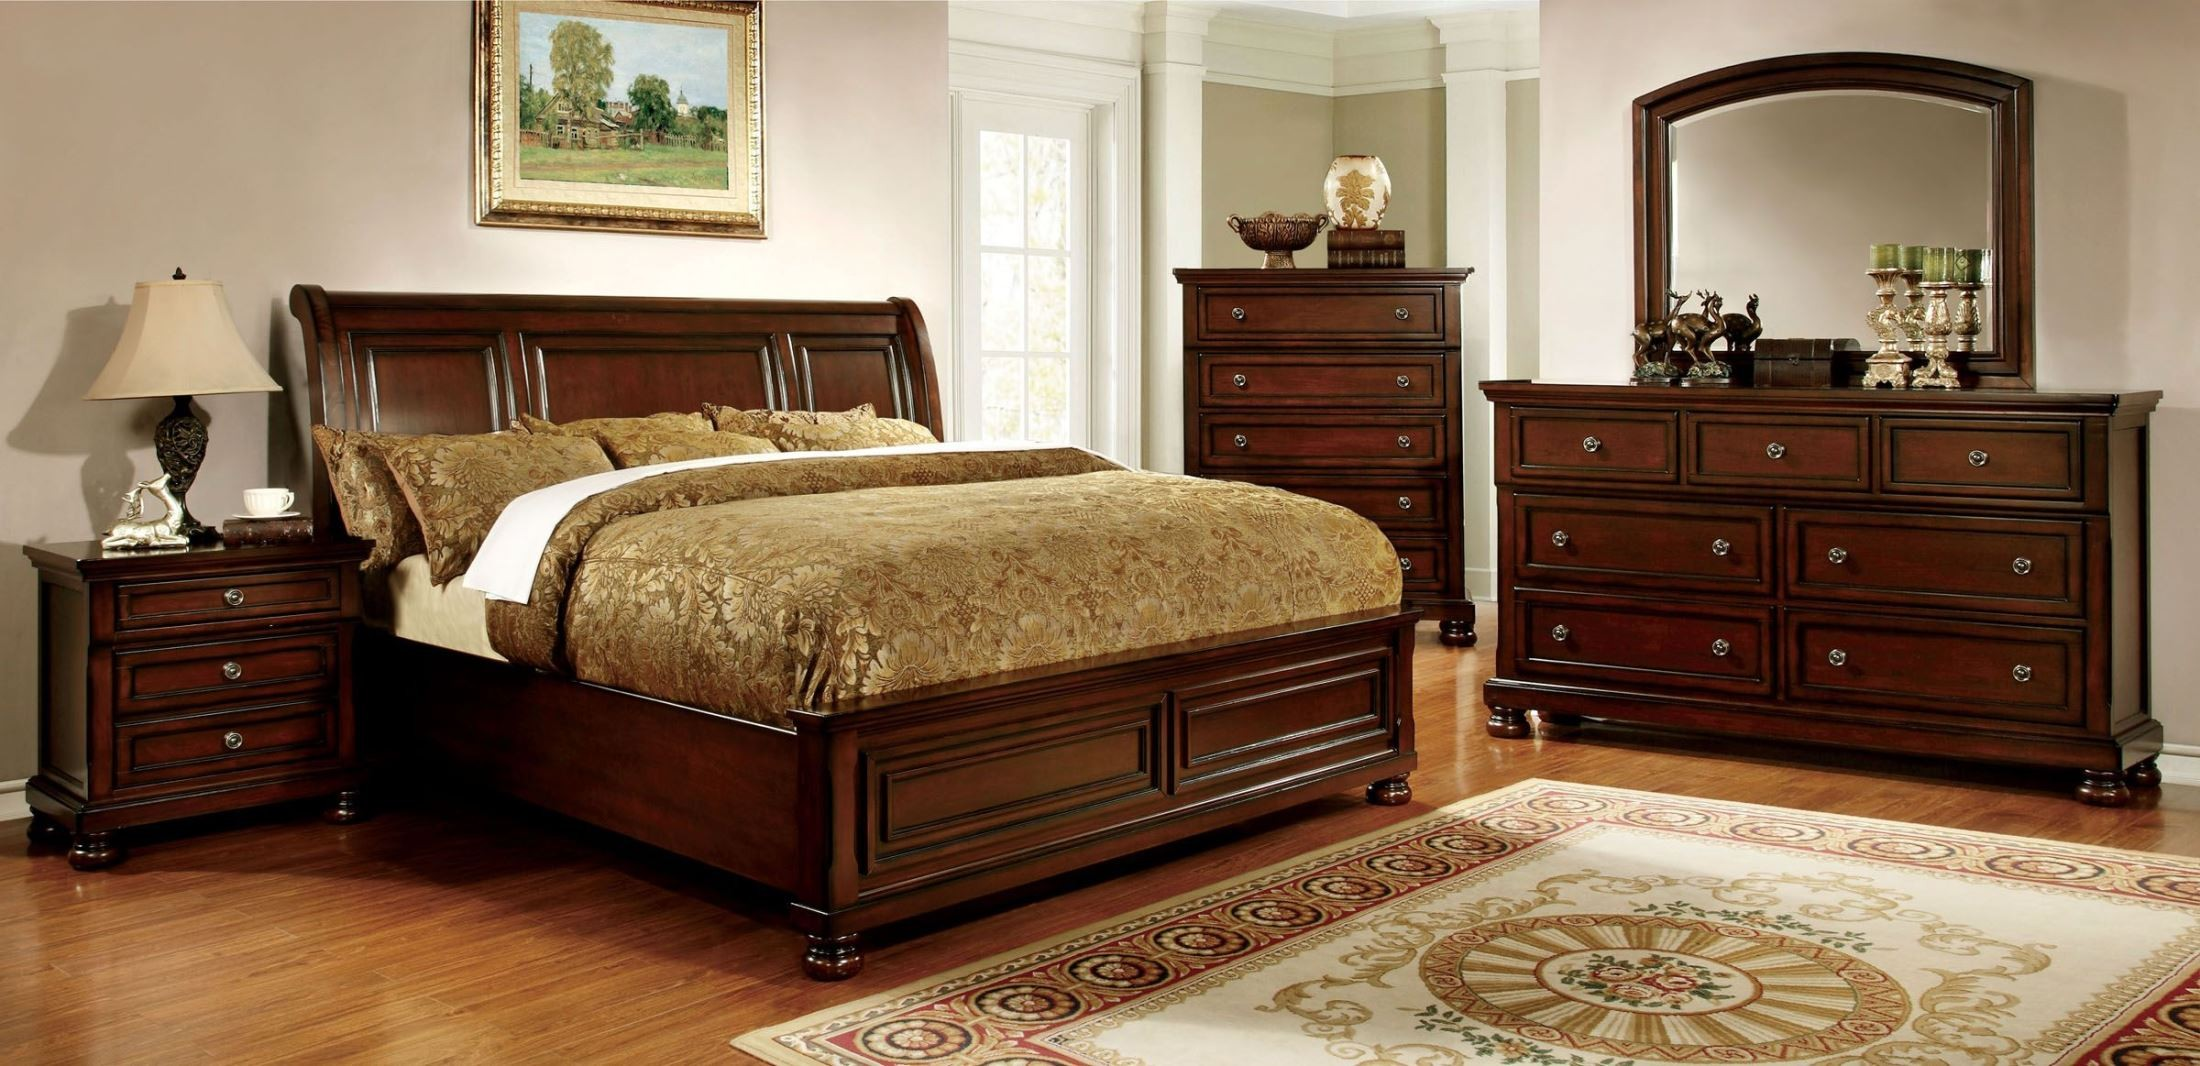 Northville dark cherry queen bed 1stopbedrooms - Bedroom furniture sets buy now pay later ...